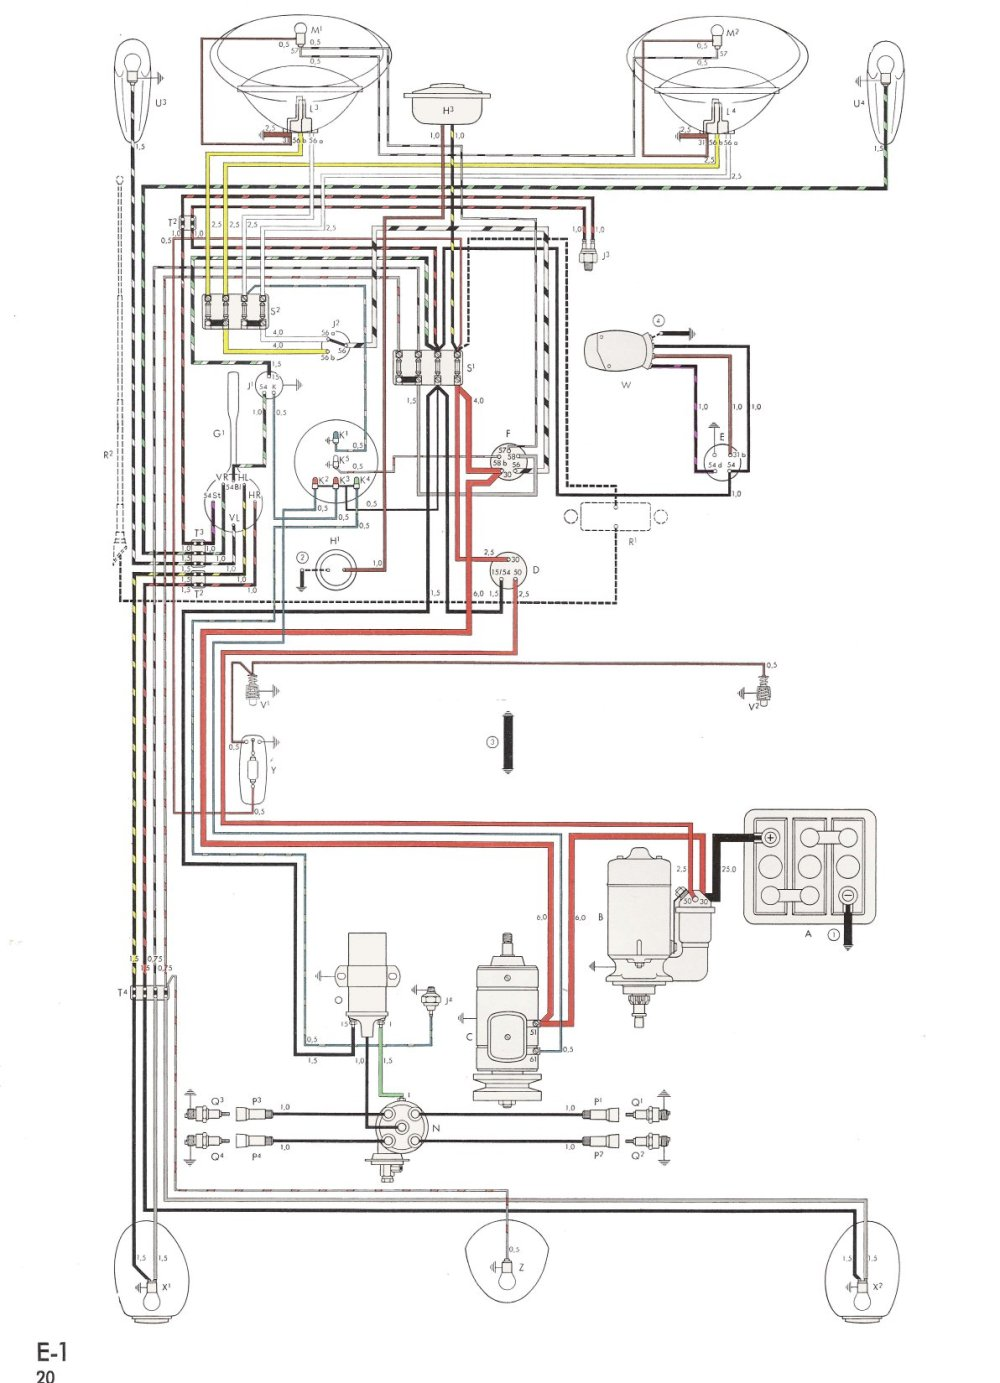 medium resolution of 1968 vw bug fuse diagram wiring diagram used1968 vw beetle wiring diagram wiring diagram for you